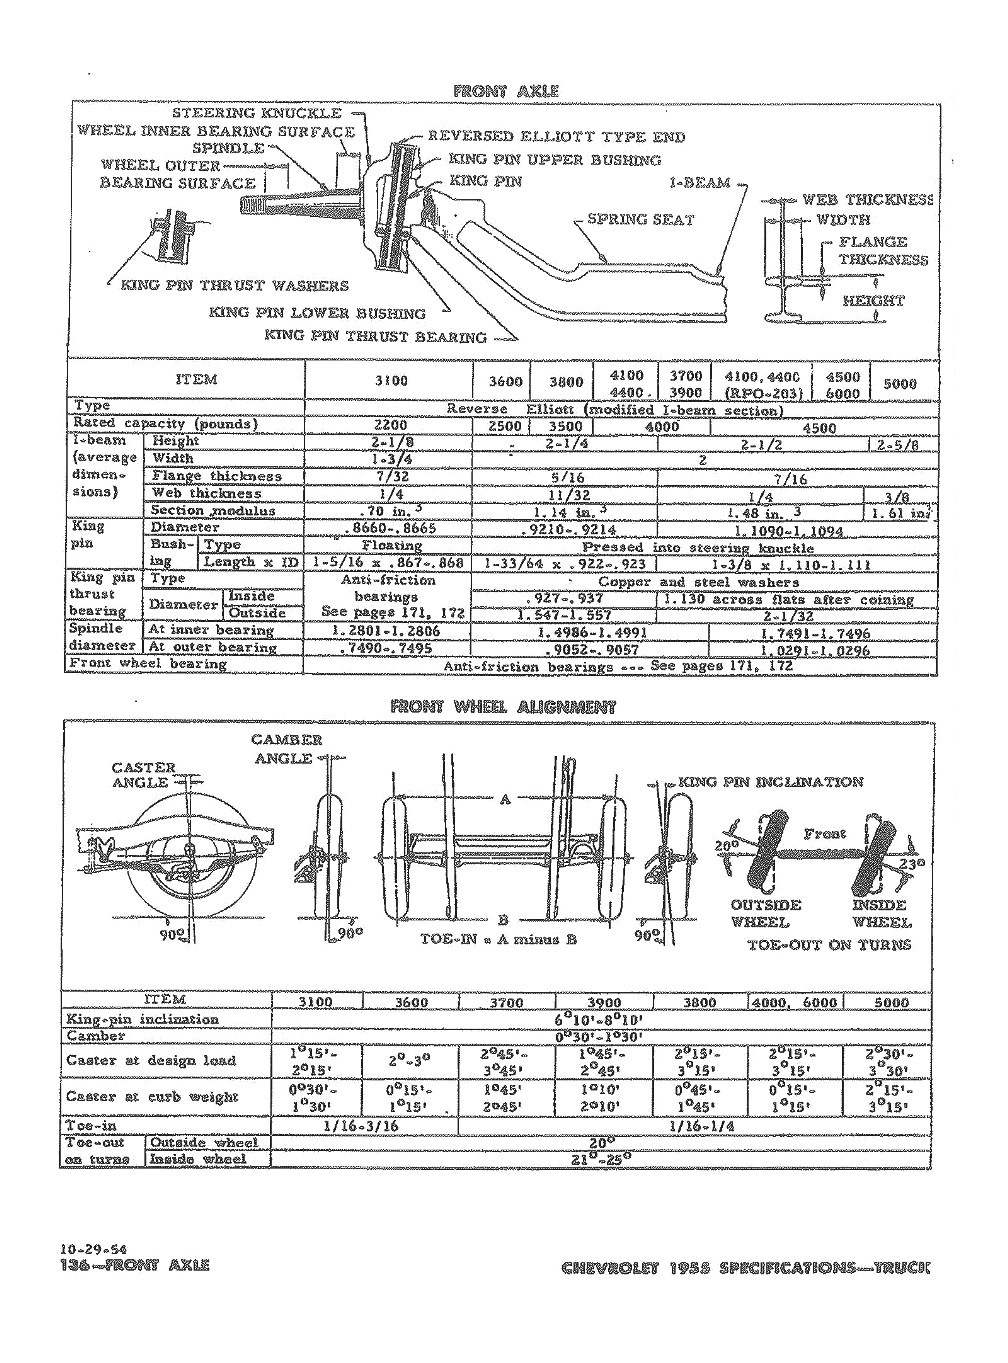 Flathead drawings steeringear in addition 1952 Ford Pickup Wiring Diagram furthermore Flathead drawings electrical in addition Gmc 302 6 Cylinder Engine besides 425801339744513939. on 1952 ford f1 pickup parts